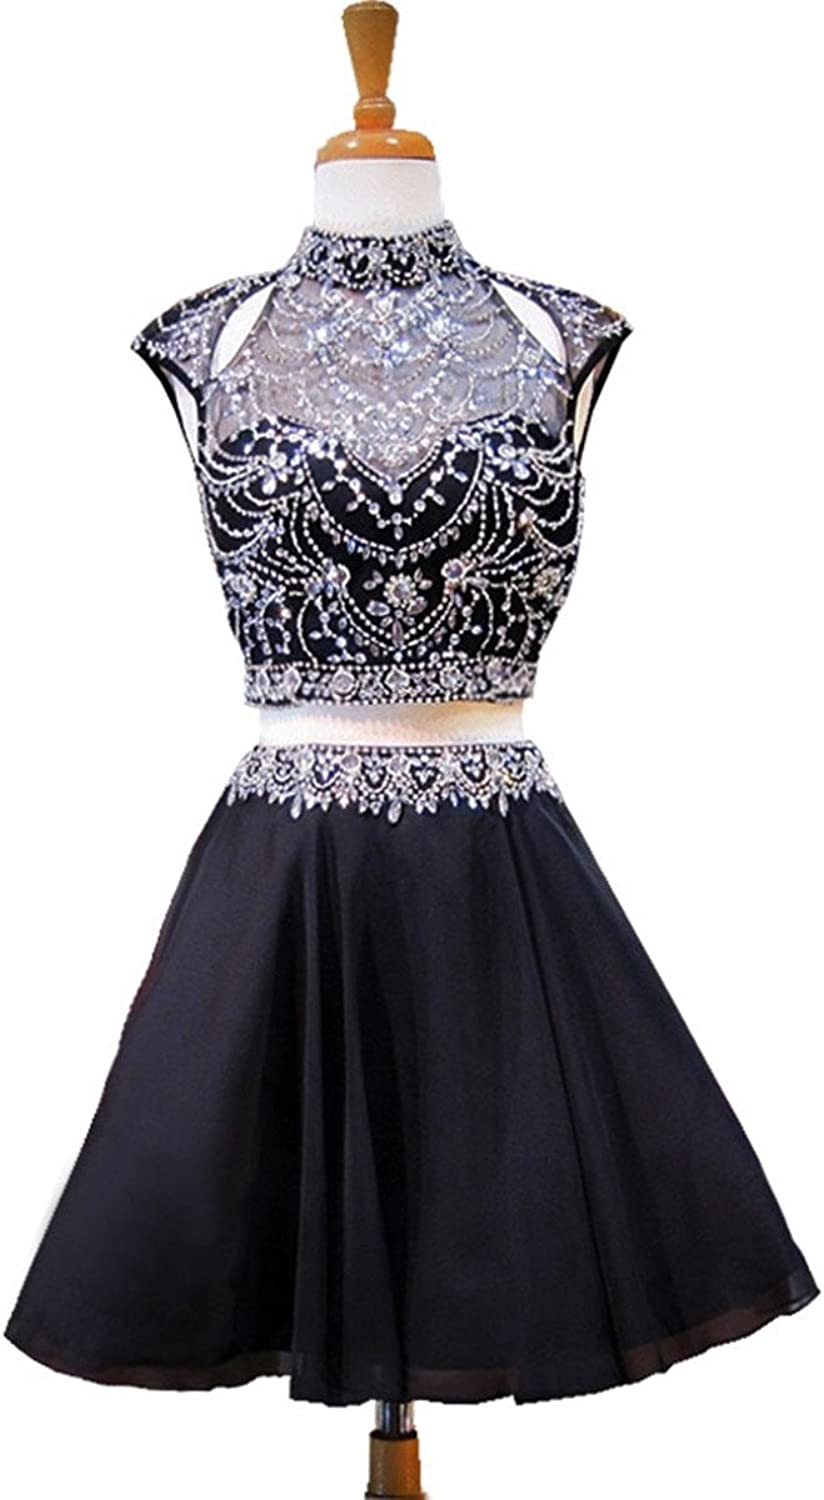 Hjtrust Women's Crystals Sequins Homecoming Dresses Two Piece Short Prom Gowns H017